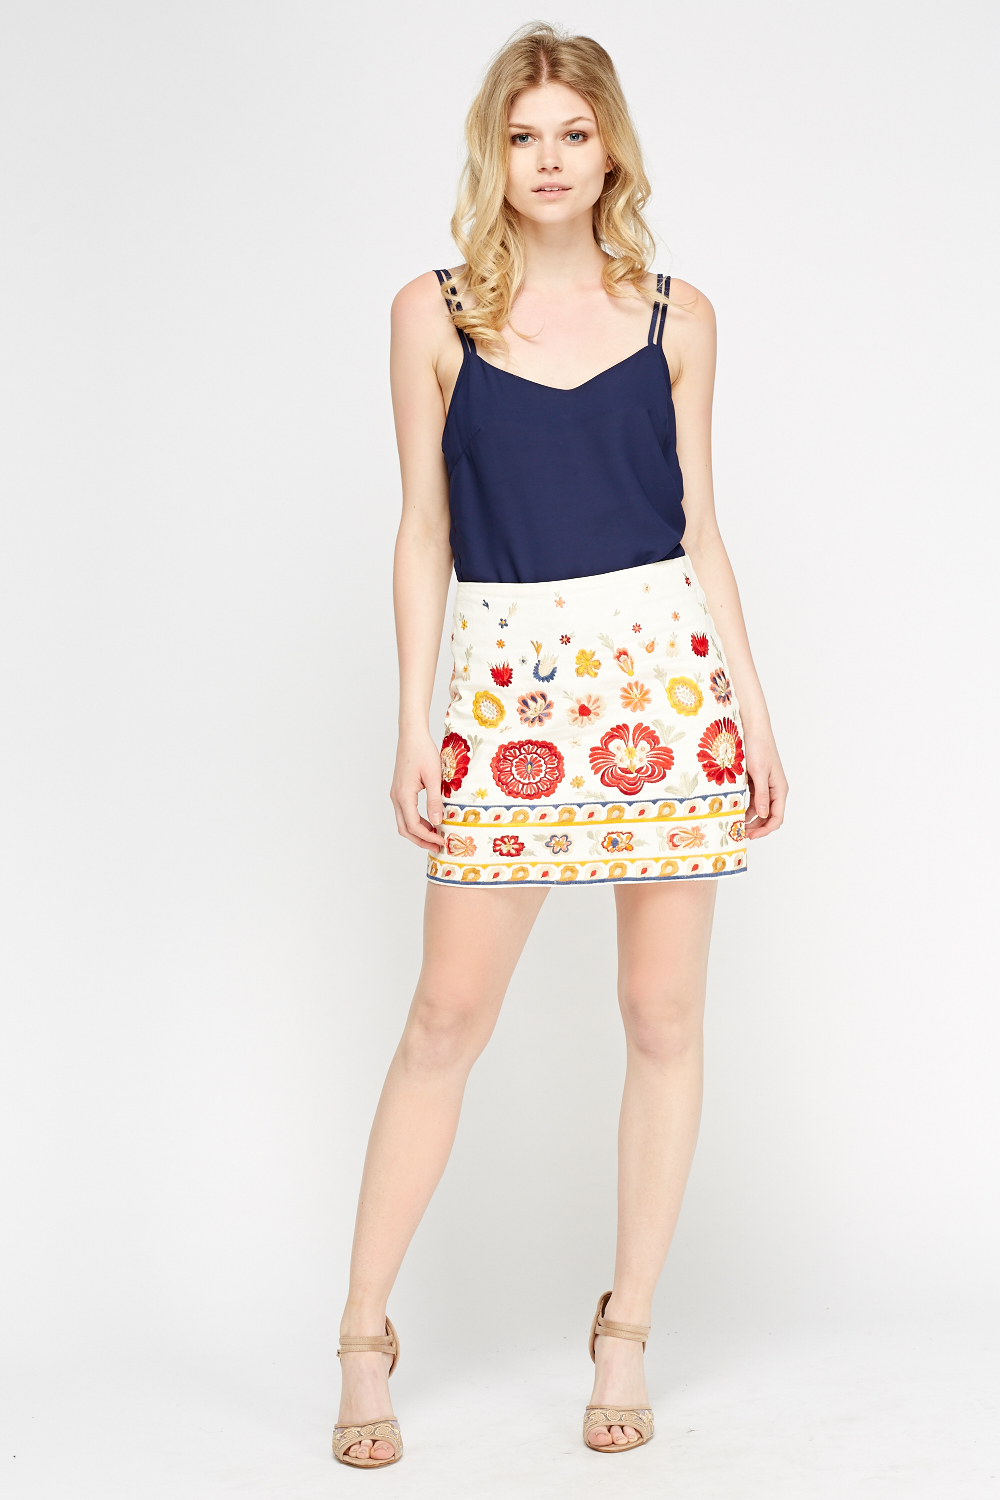 Cheap Skirts for £5   Everything5Pounds